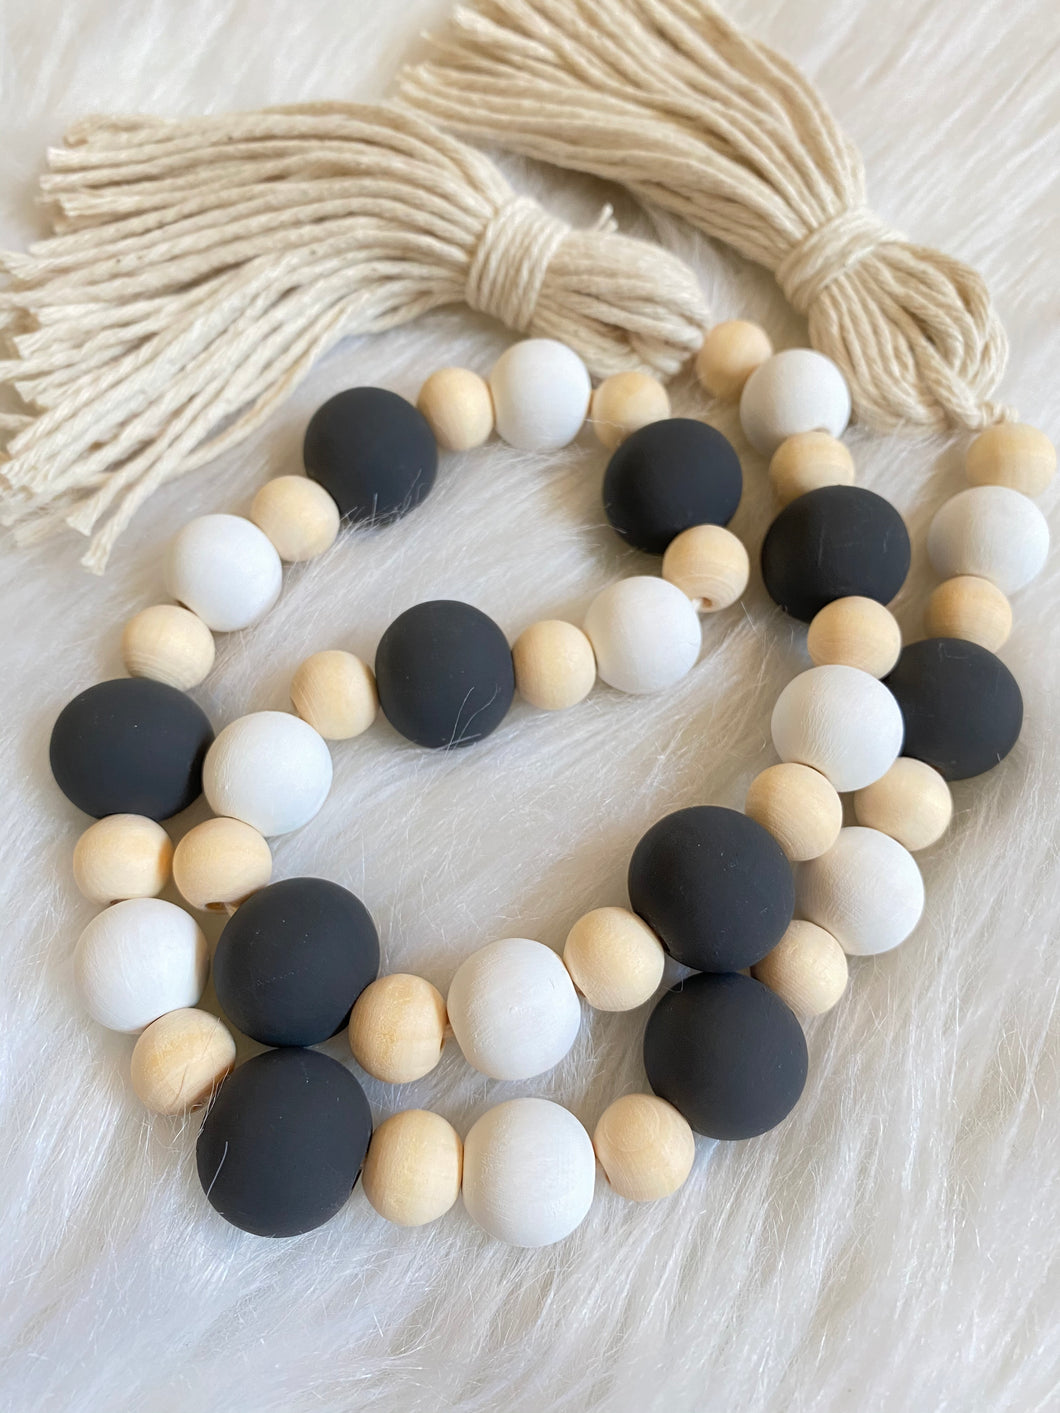 Farmhouse Wood Bead Garland - Tassels - Black and White Painted Wood Beads - Stocking Stuffer